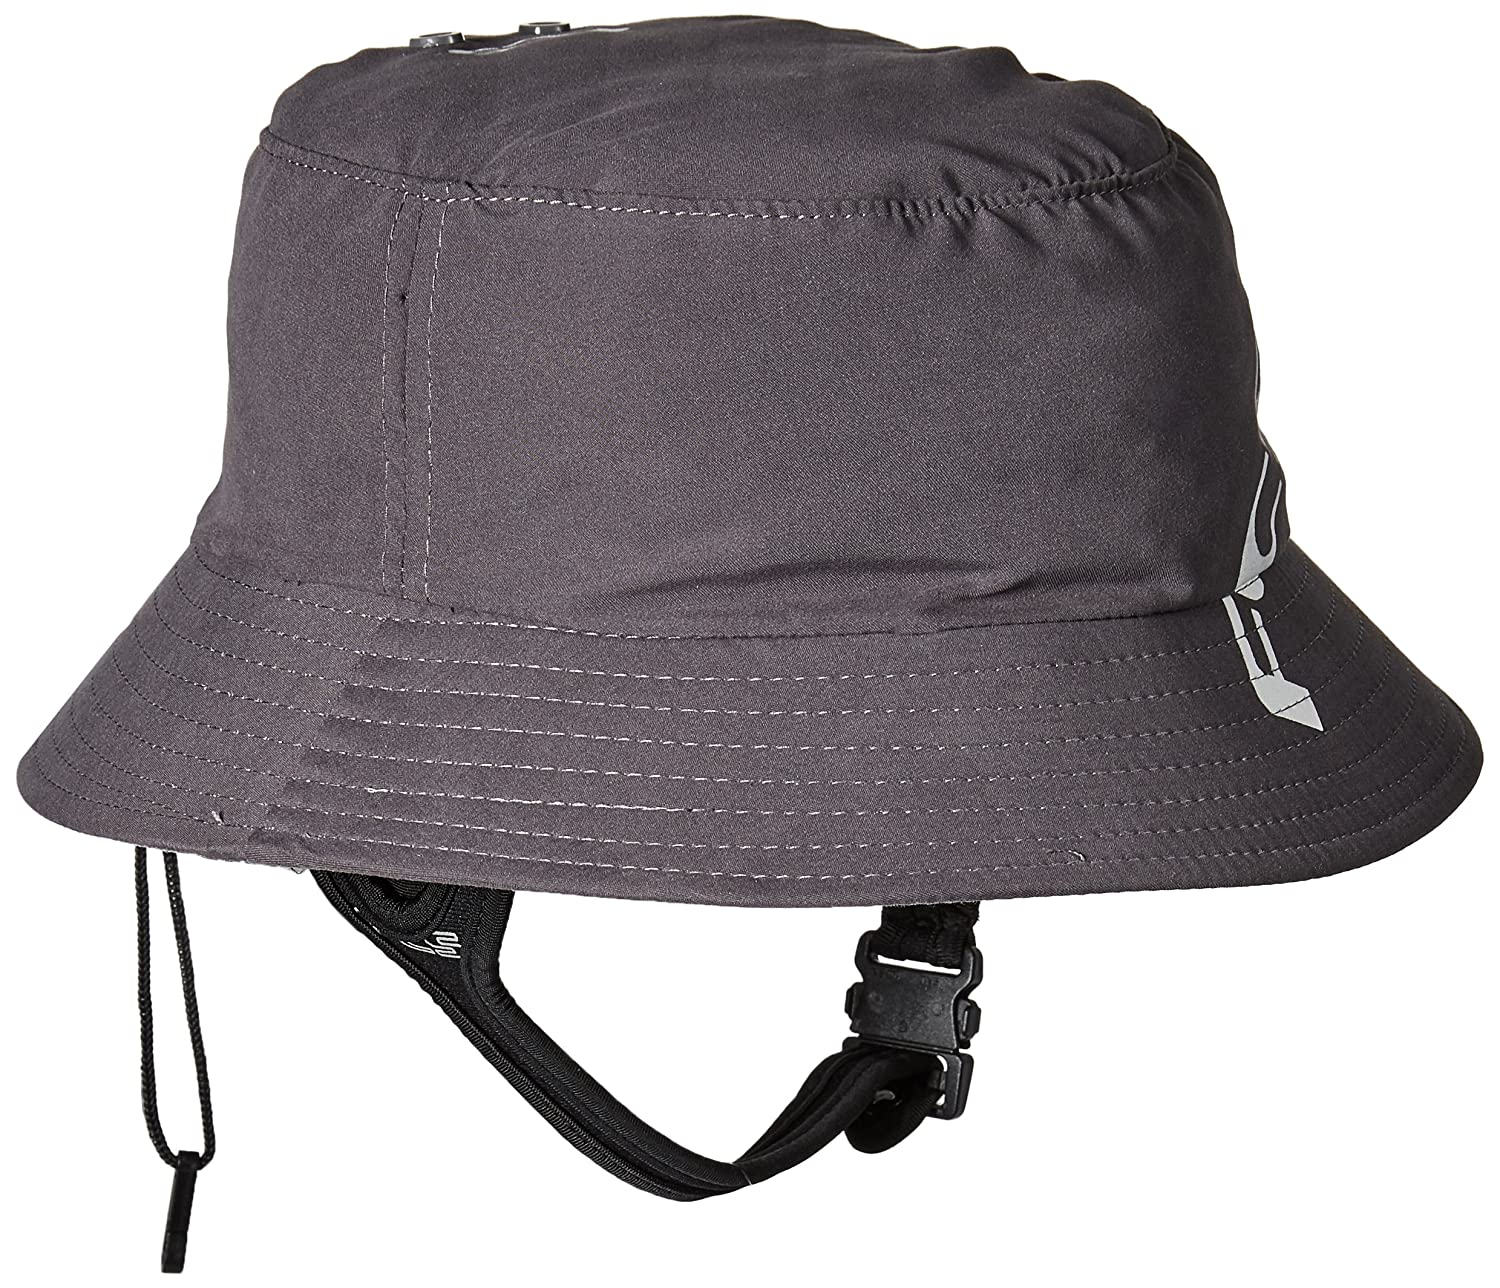 c075a3563cd9b Protect Your Head With The Best Sun Hat for Surfing And Paddle ...